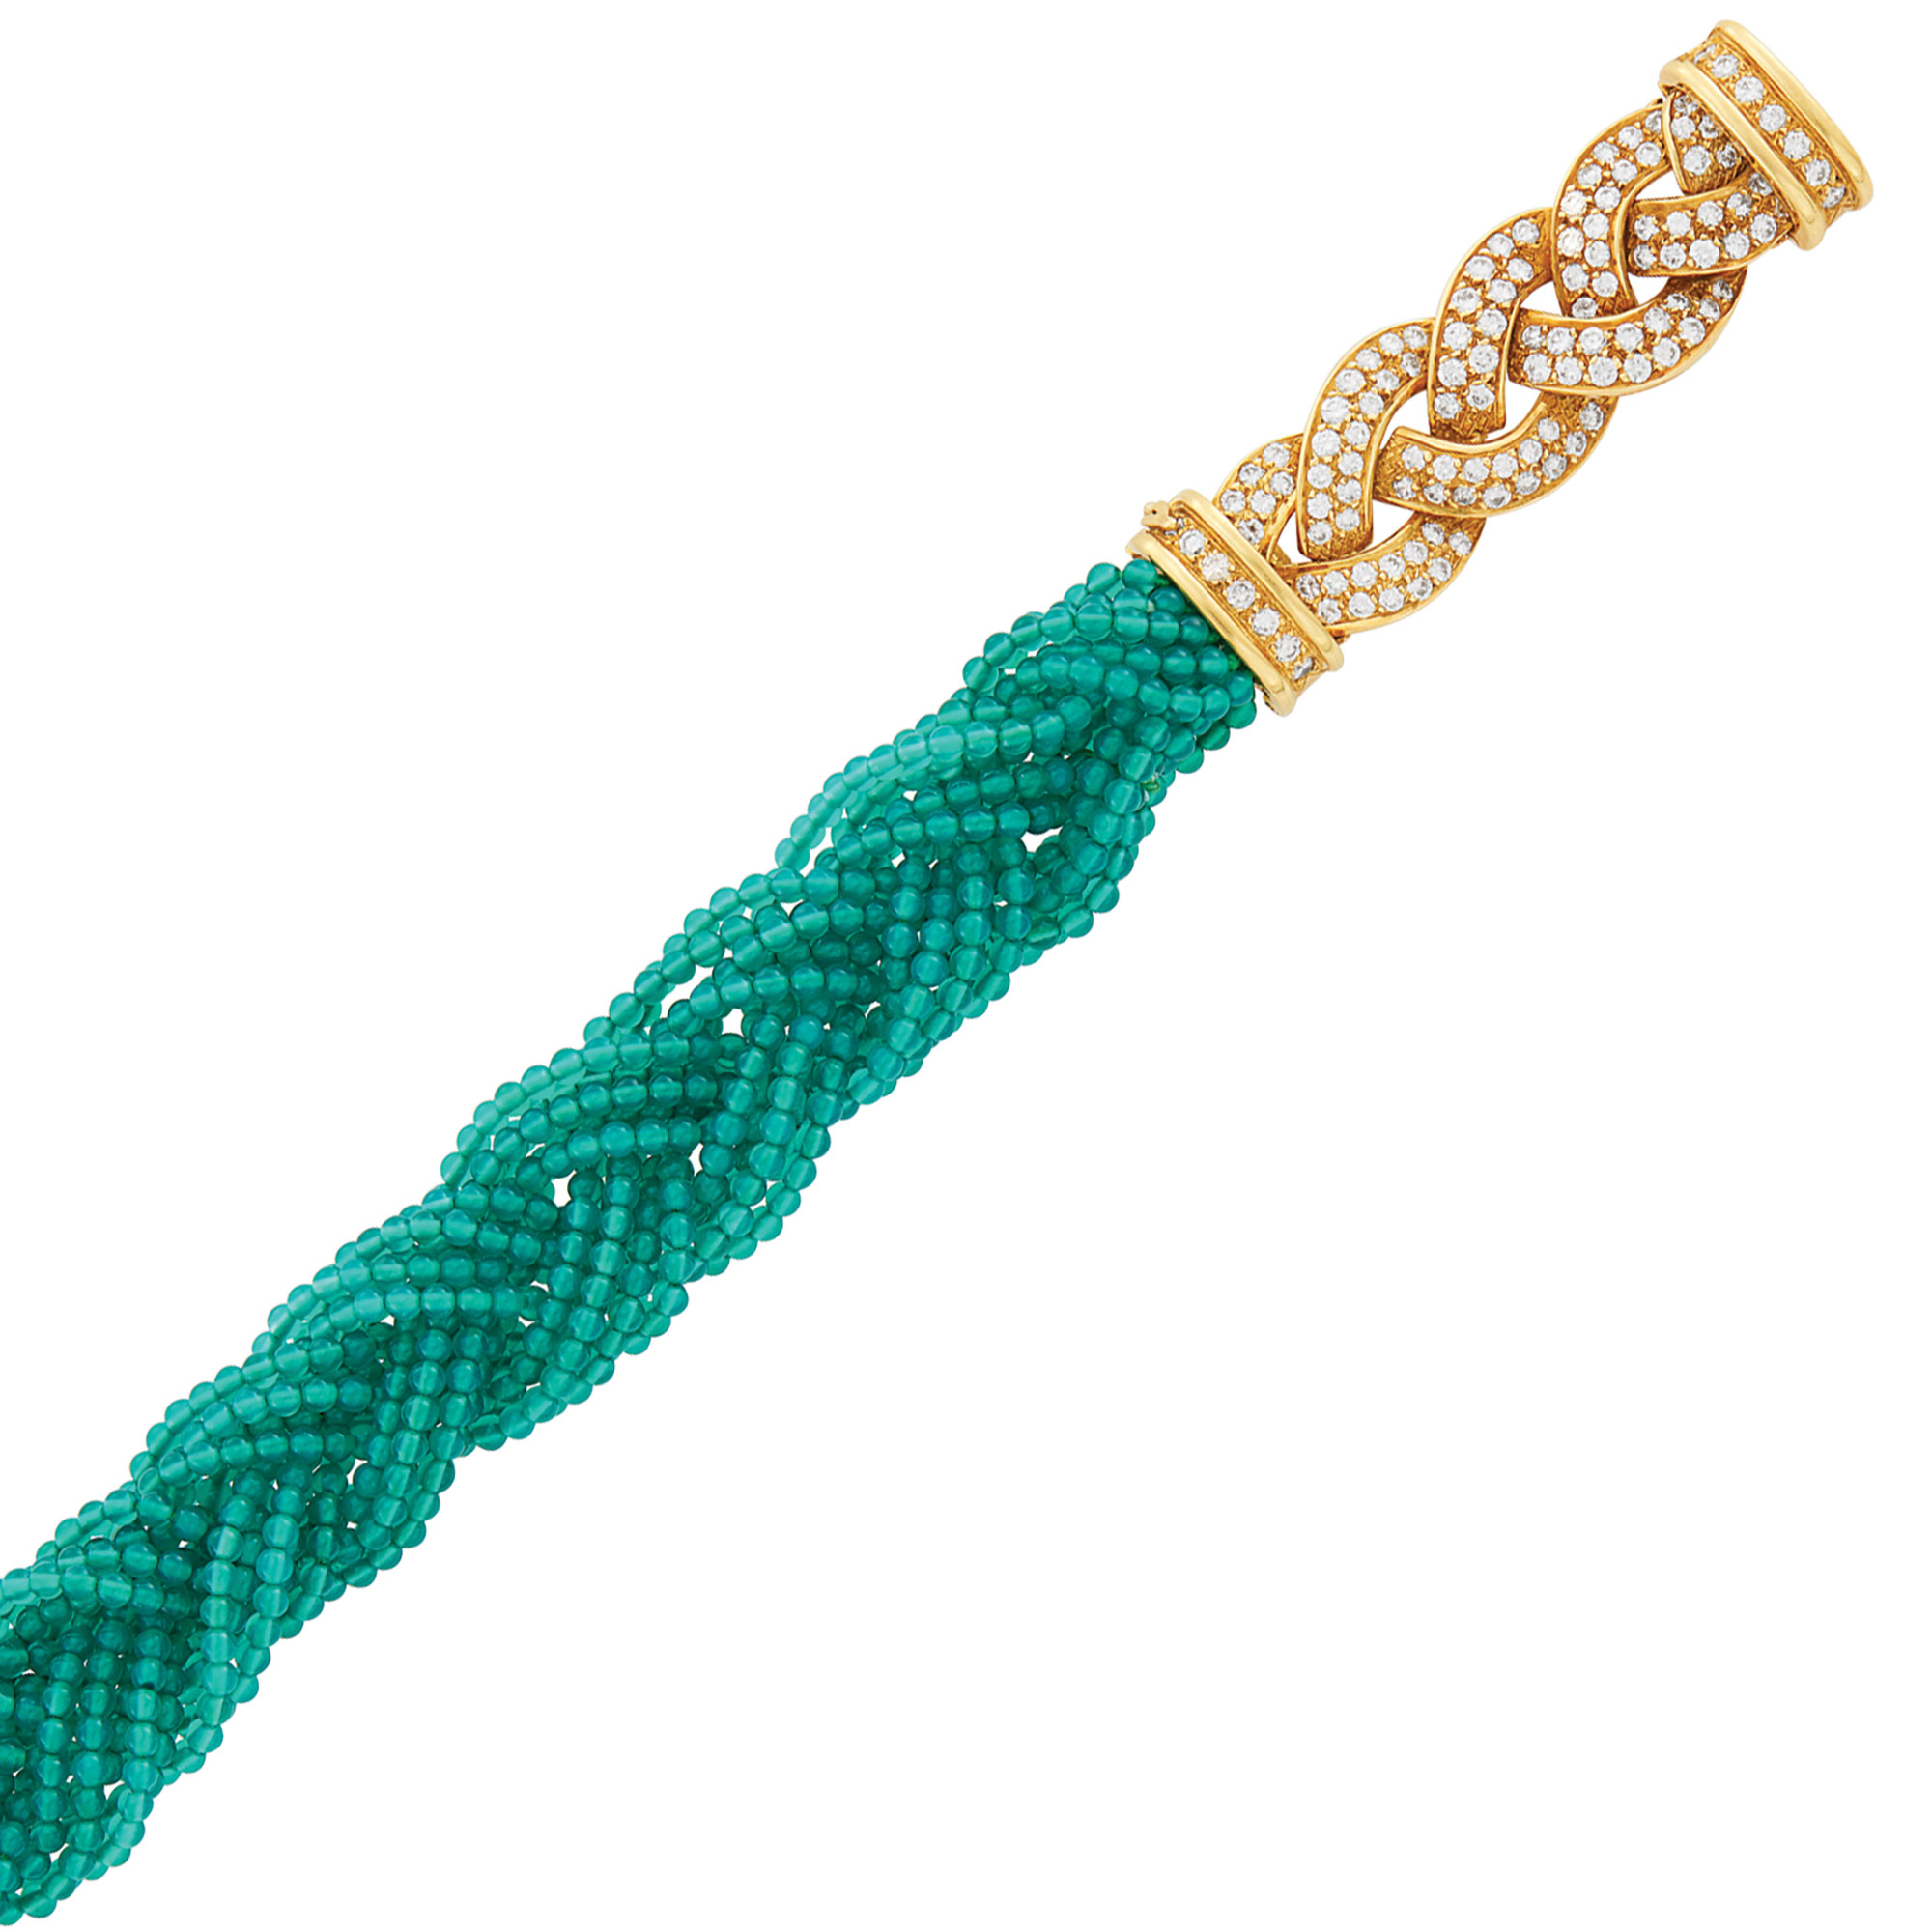 Lot image - Braided Green Onyx Bead, Gold and Diamond Bracelet, Van Cleef & Arpels, France